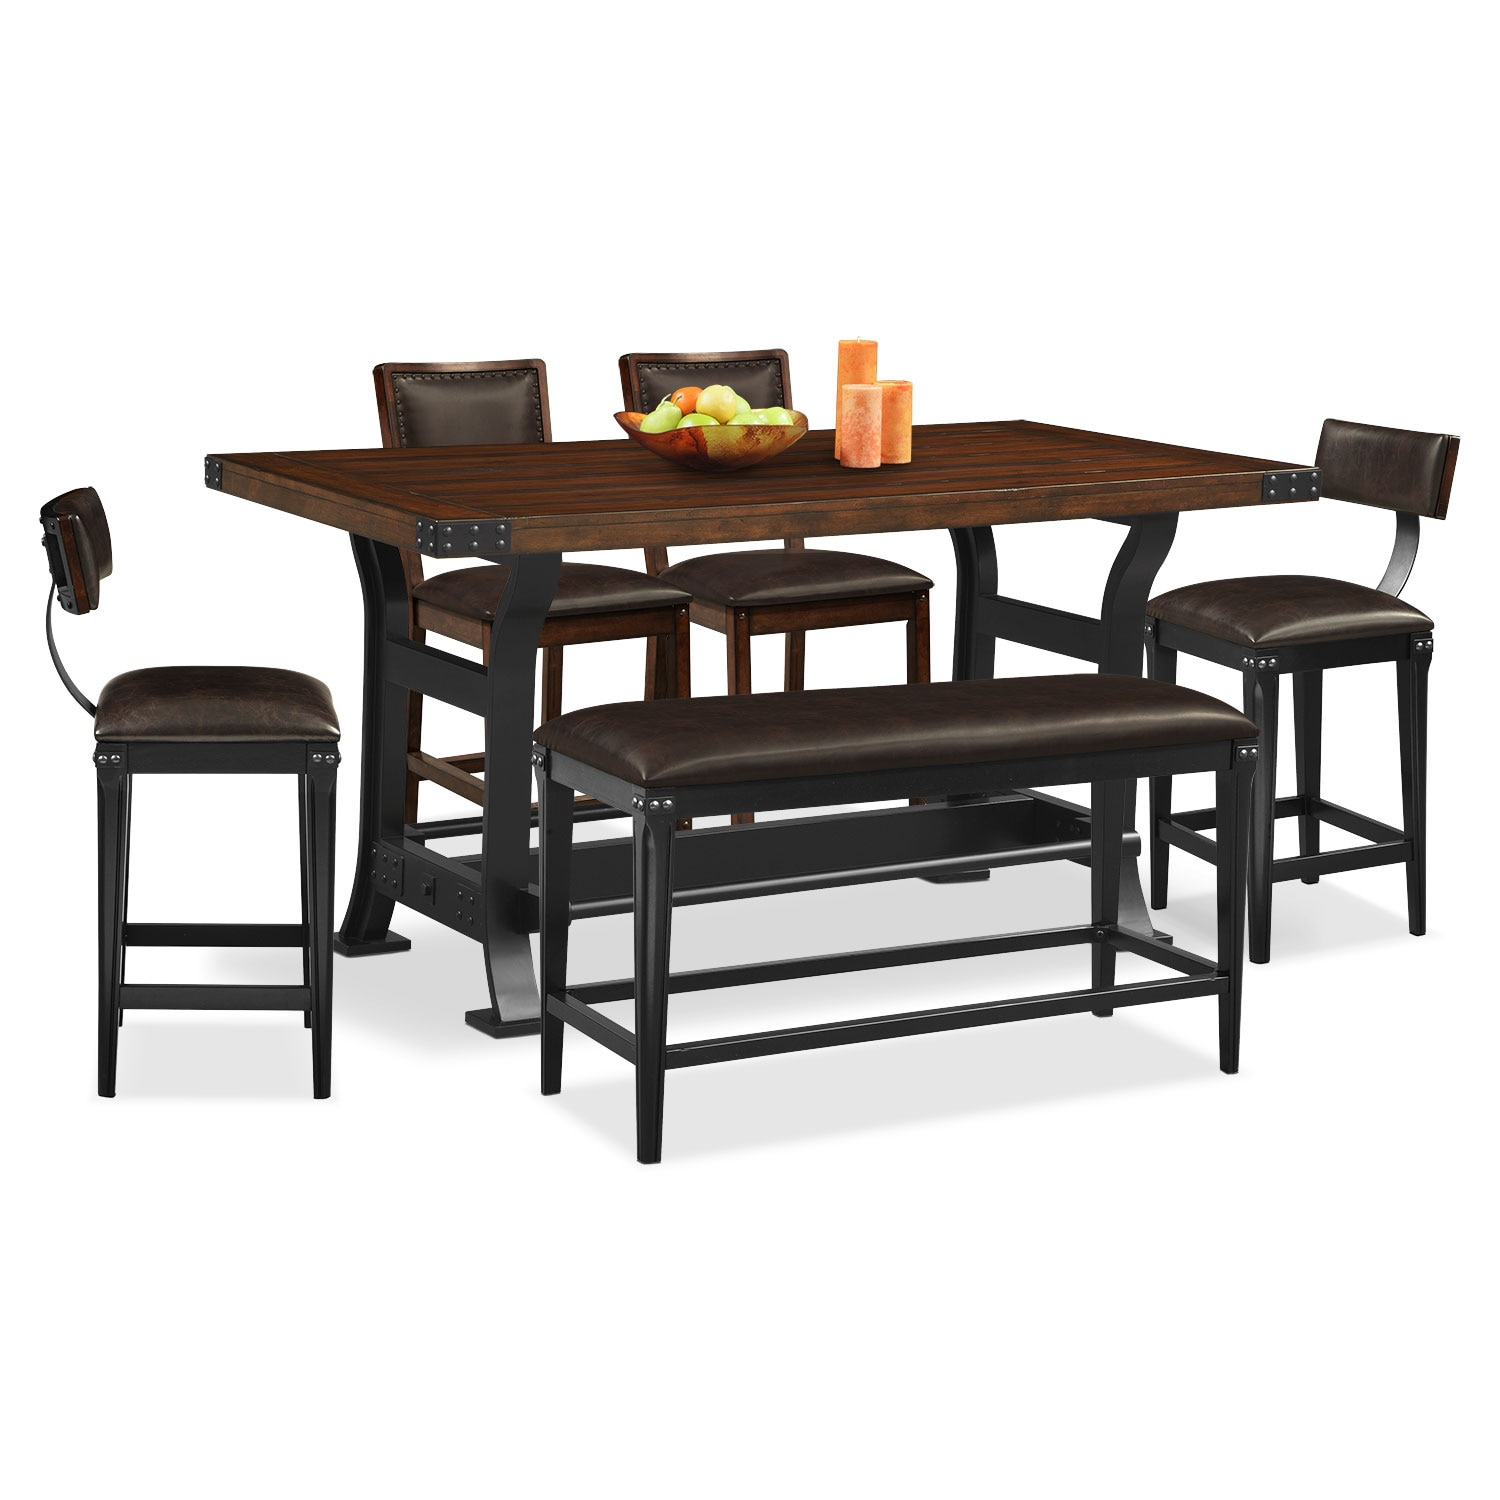 Dining Table With Two Chairs: Newcastle Counter-Height Dining Table, 2 Chairs, 2 Stools